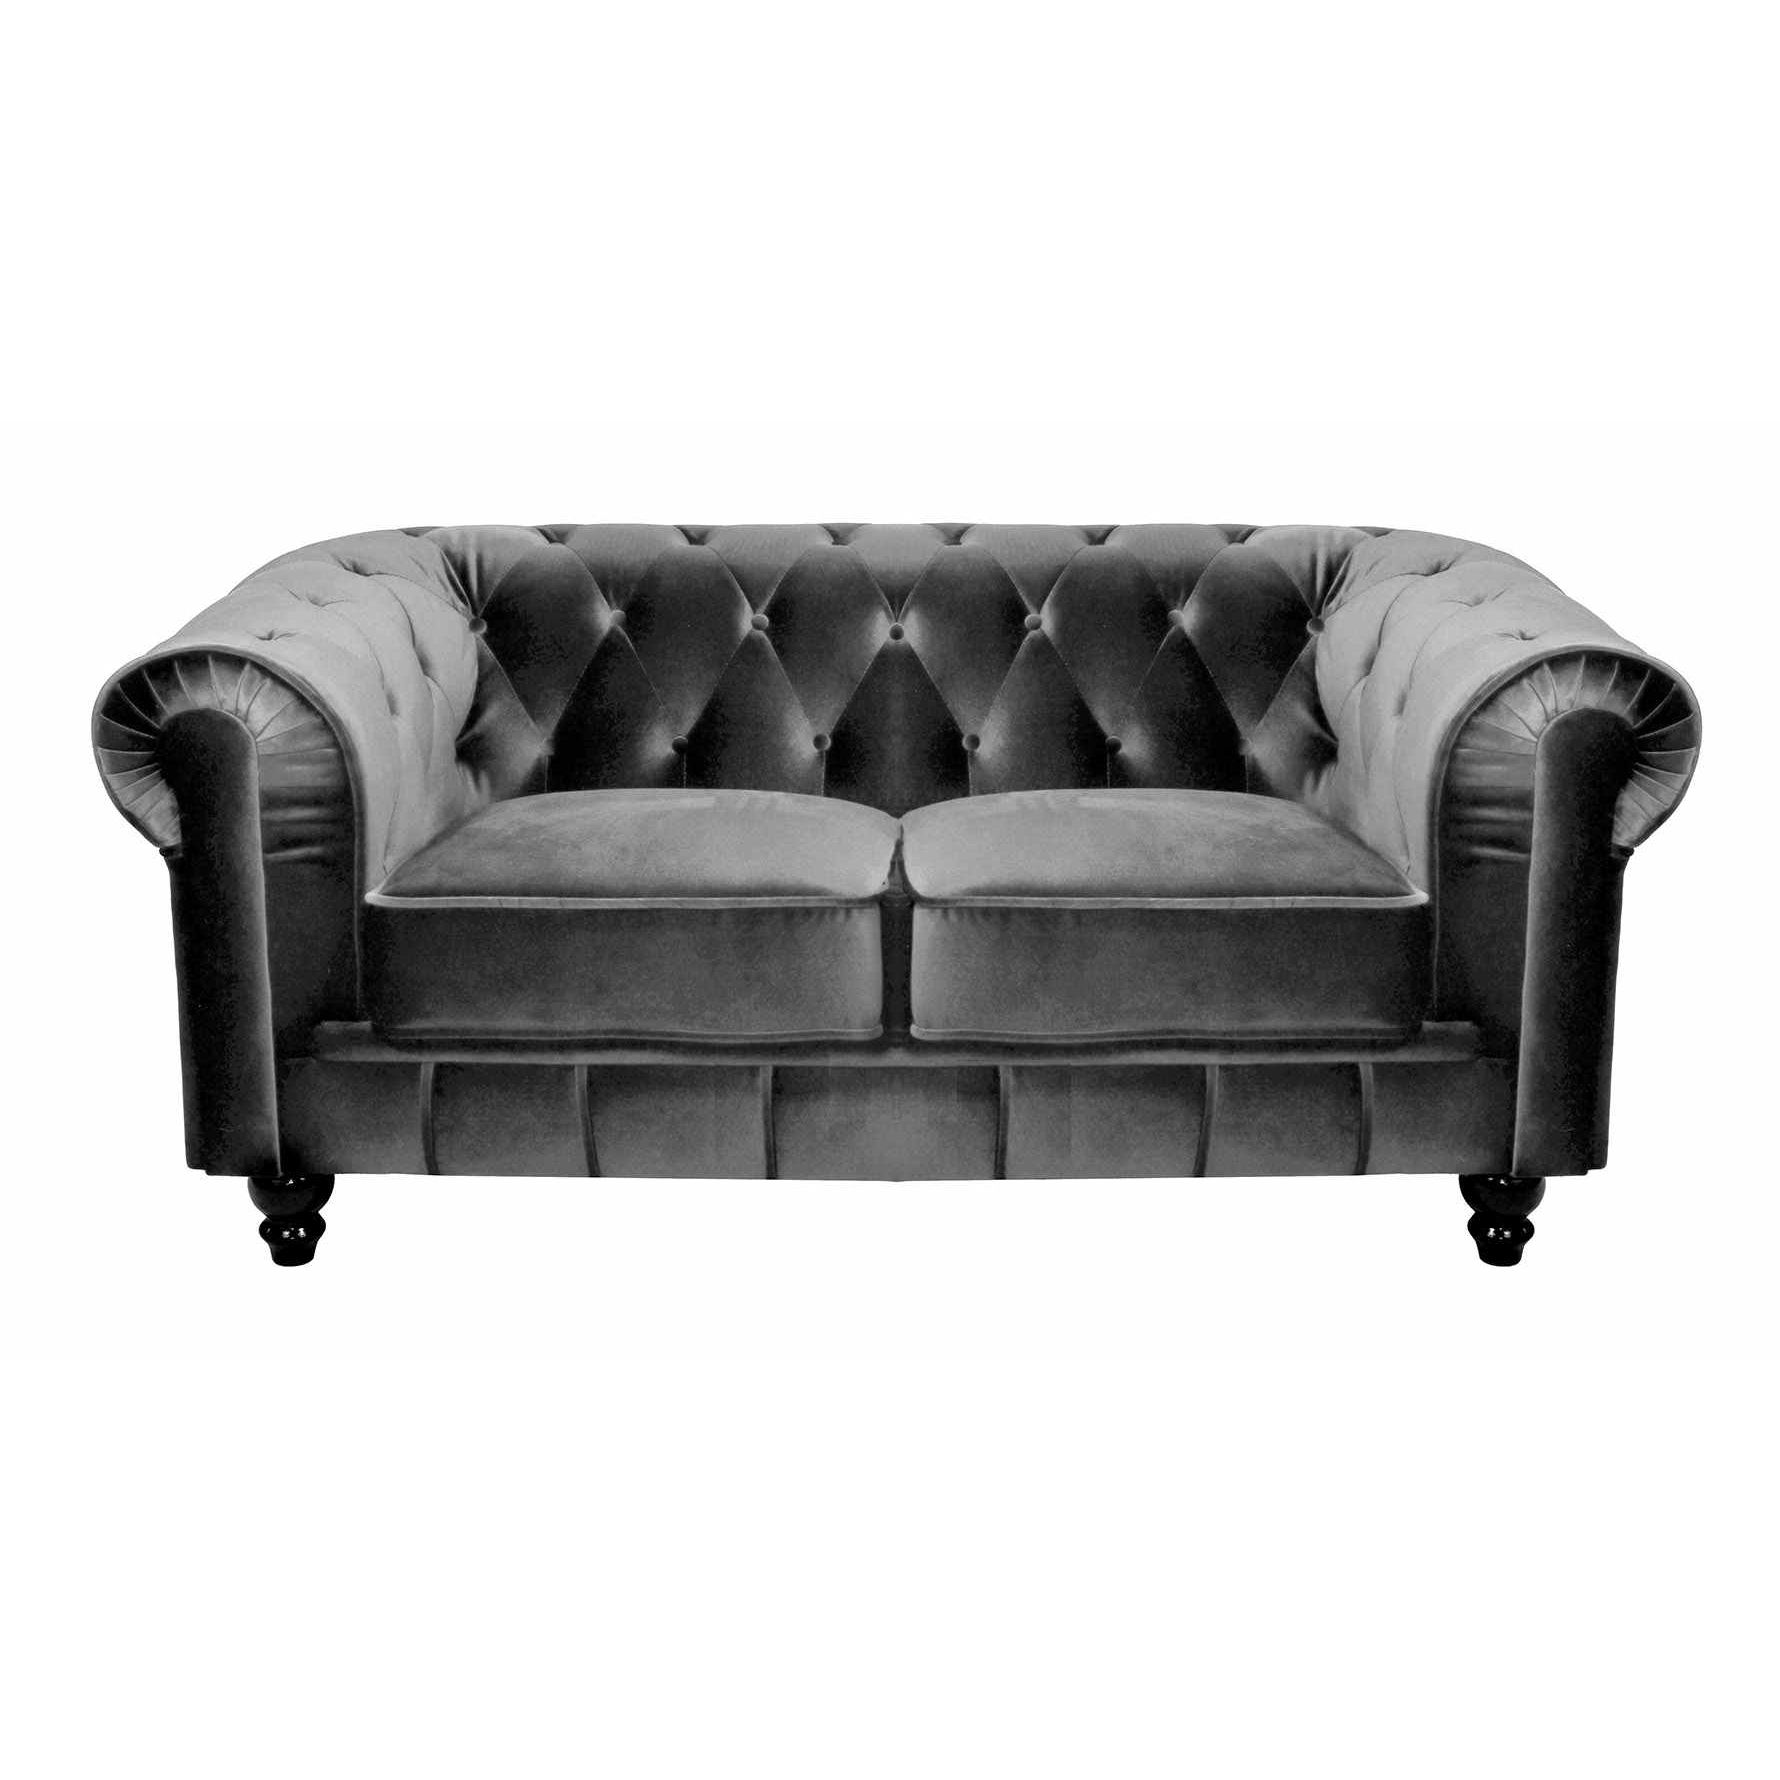 Deco in paris canape 2 places velours gris chesterfield for Canape chesterfield en velours